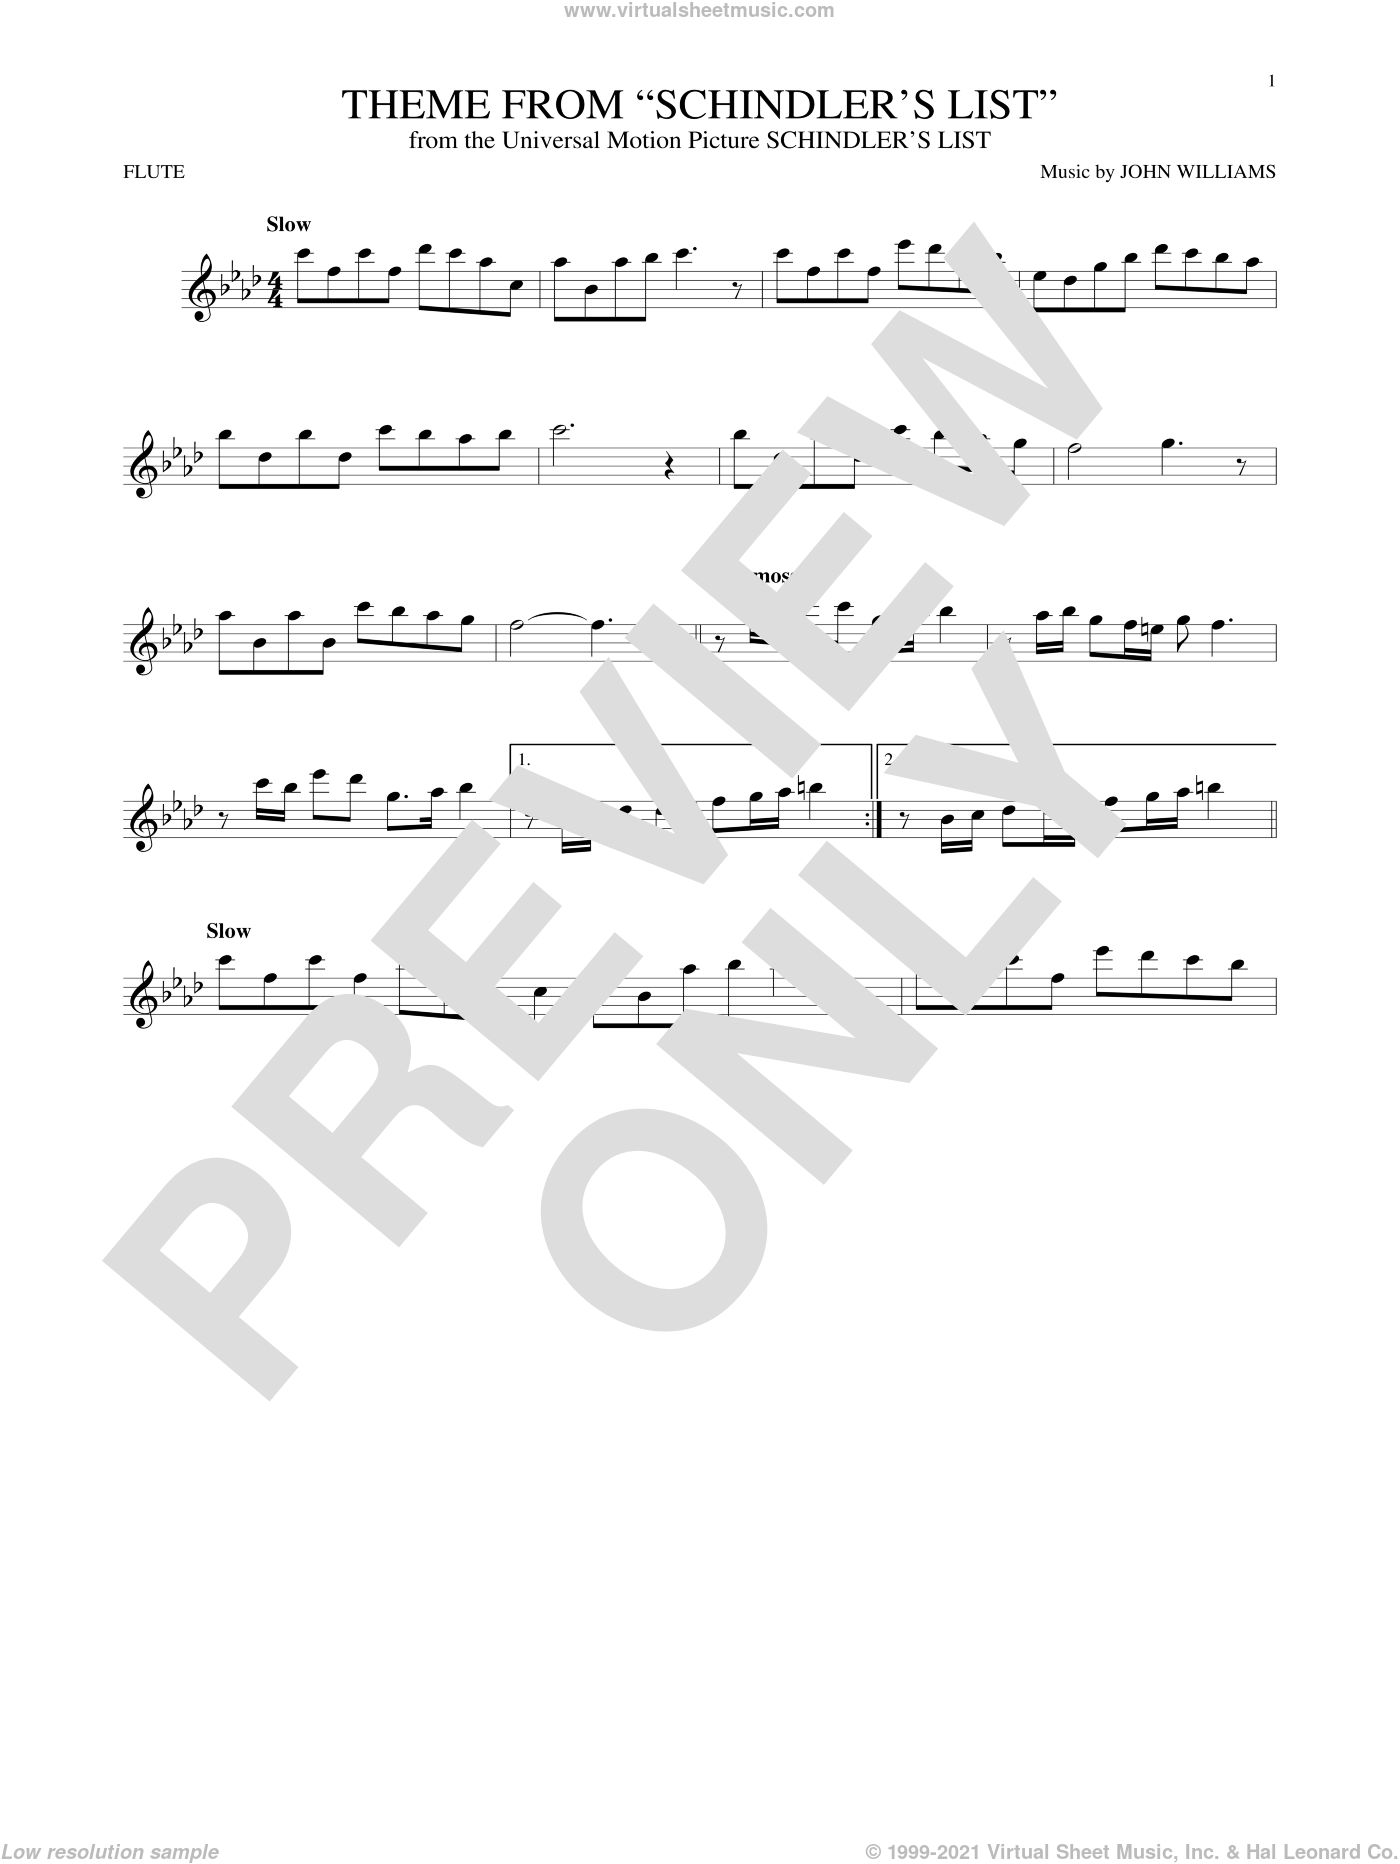 Theme From Schindler's List sheet music for flute solo by John Williams. Score Image Preview.